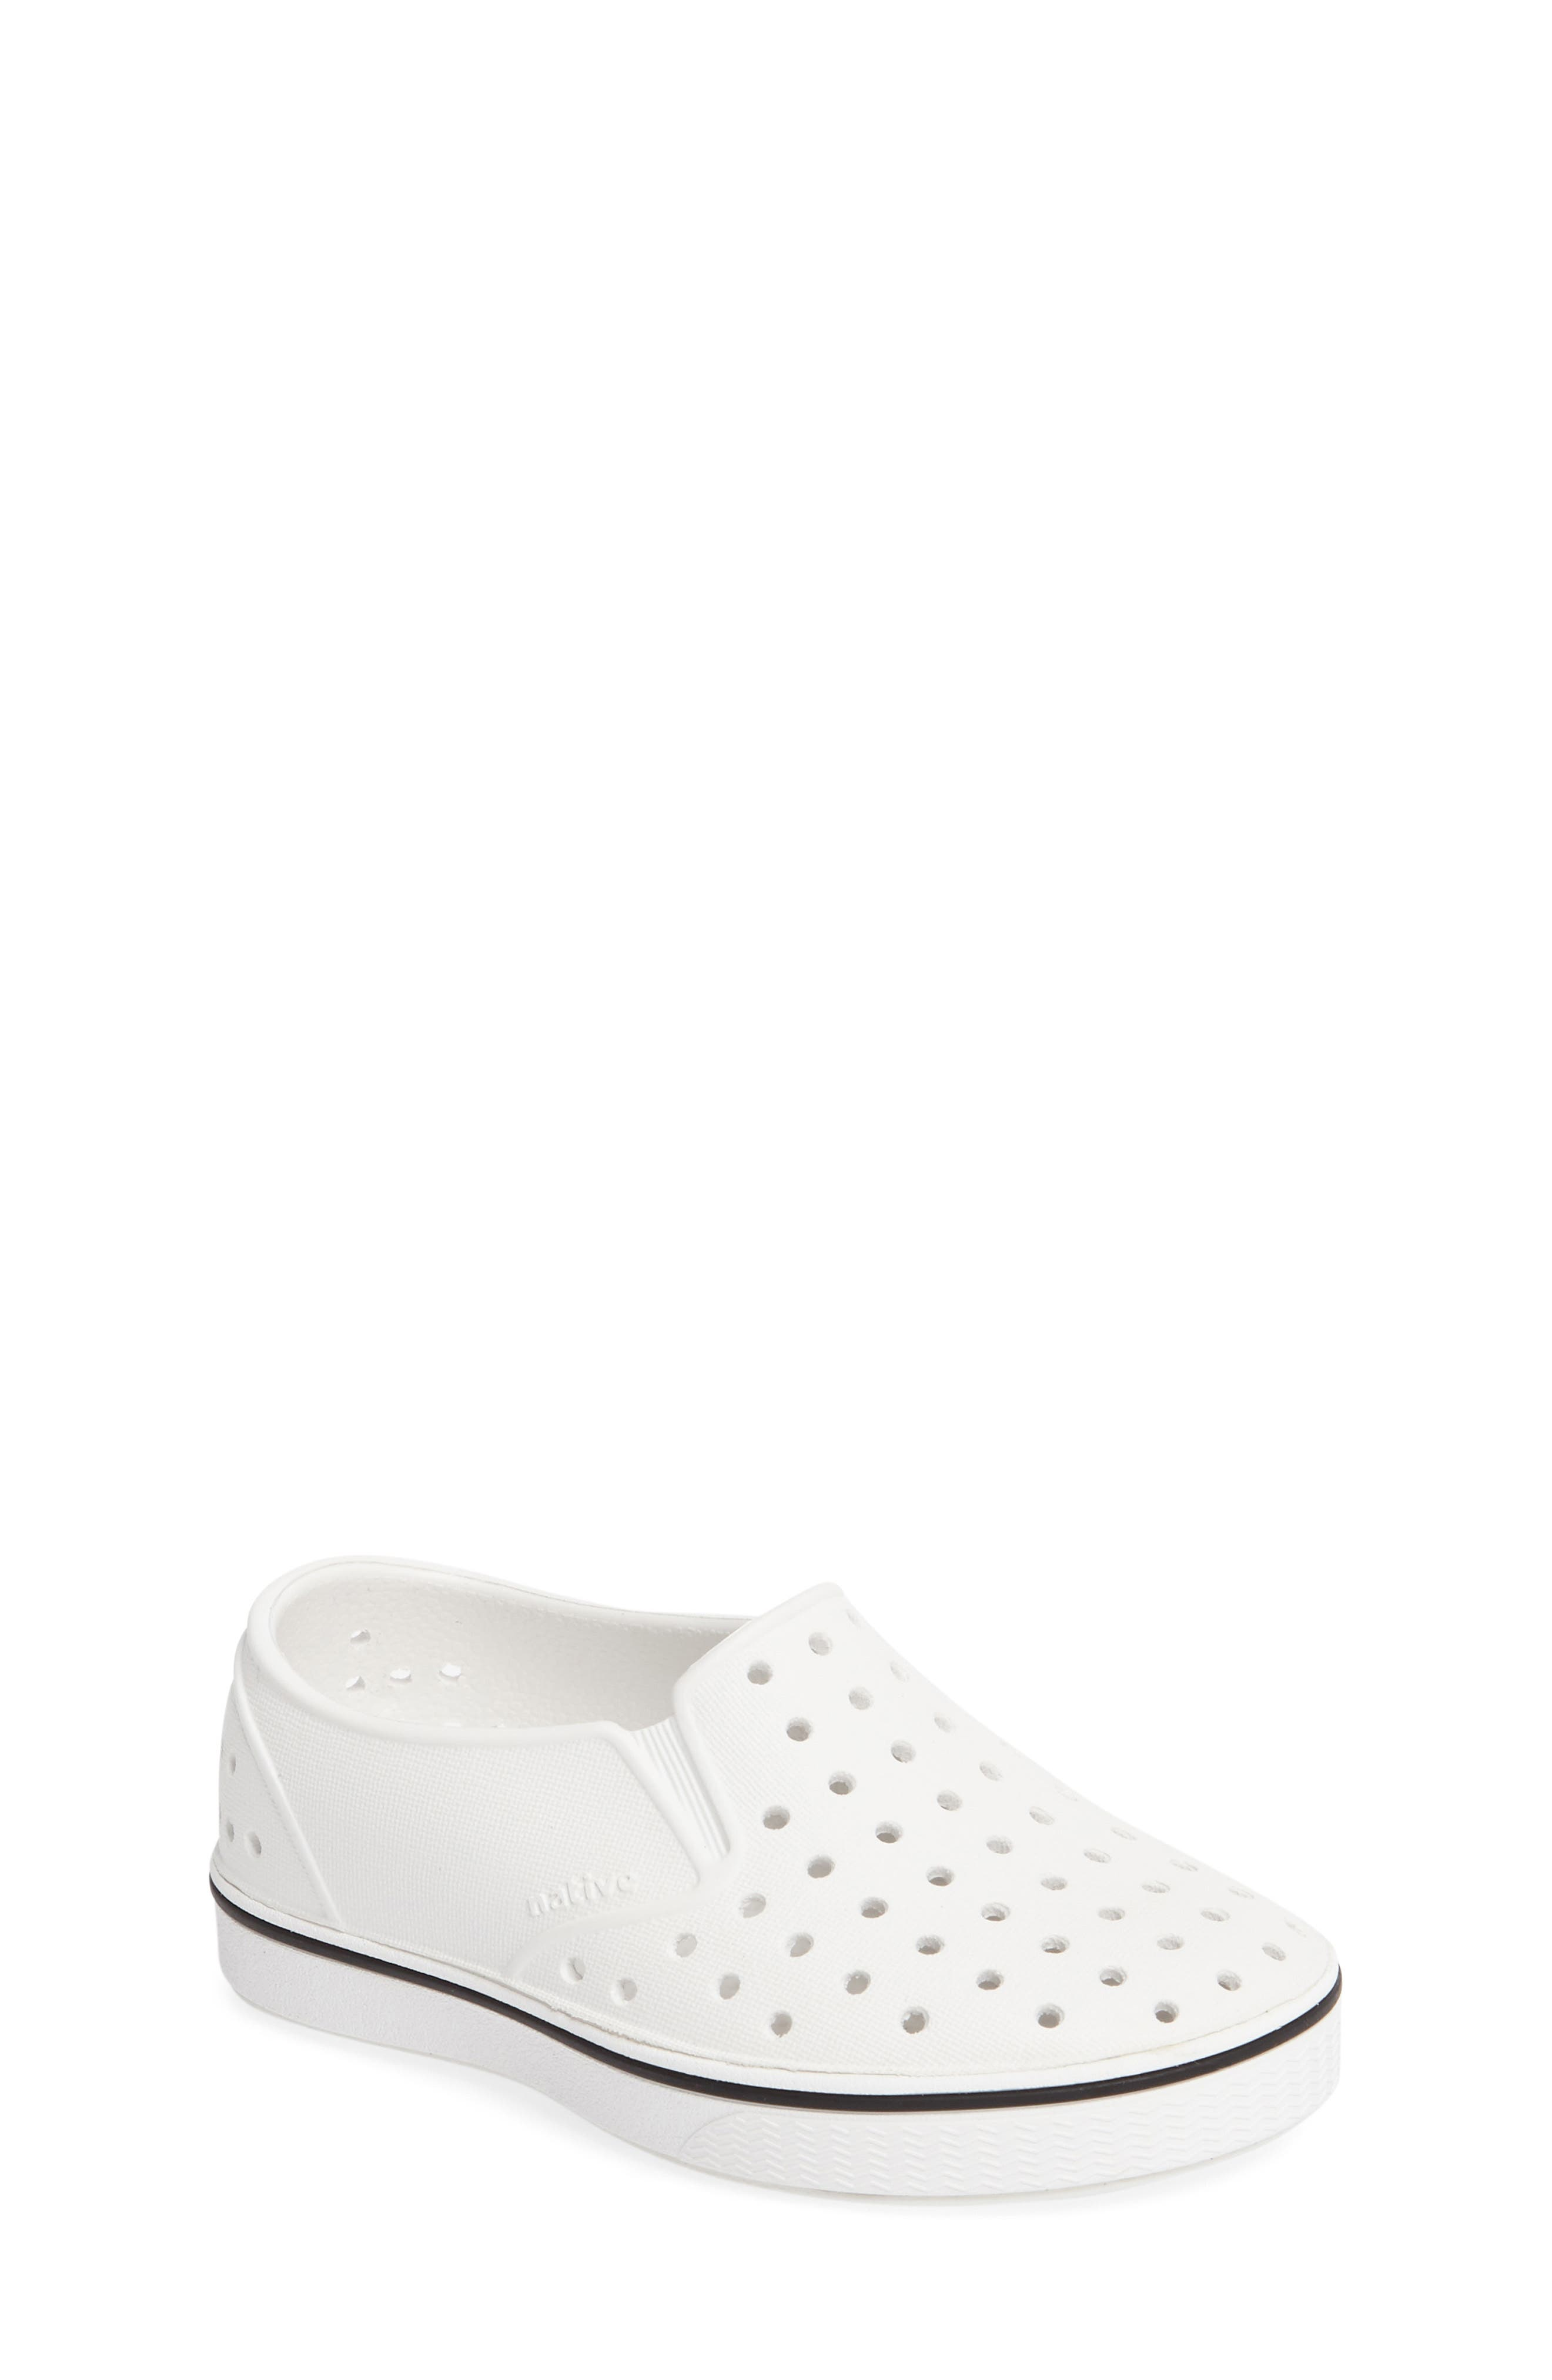 Native Shoes Miles Water Friendly Slip-On Vegan Sneaker